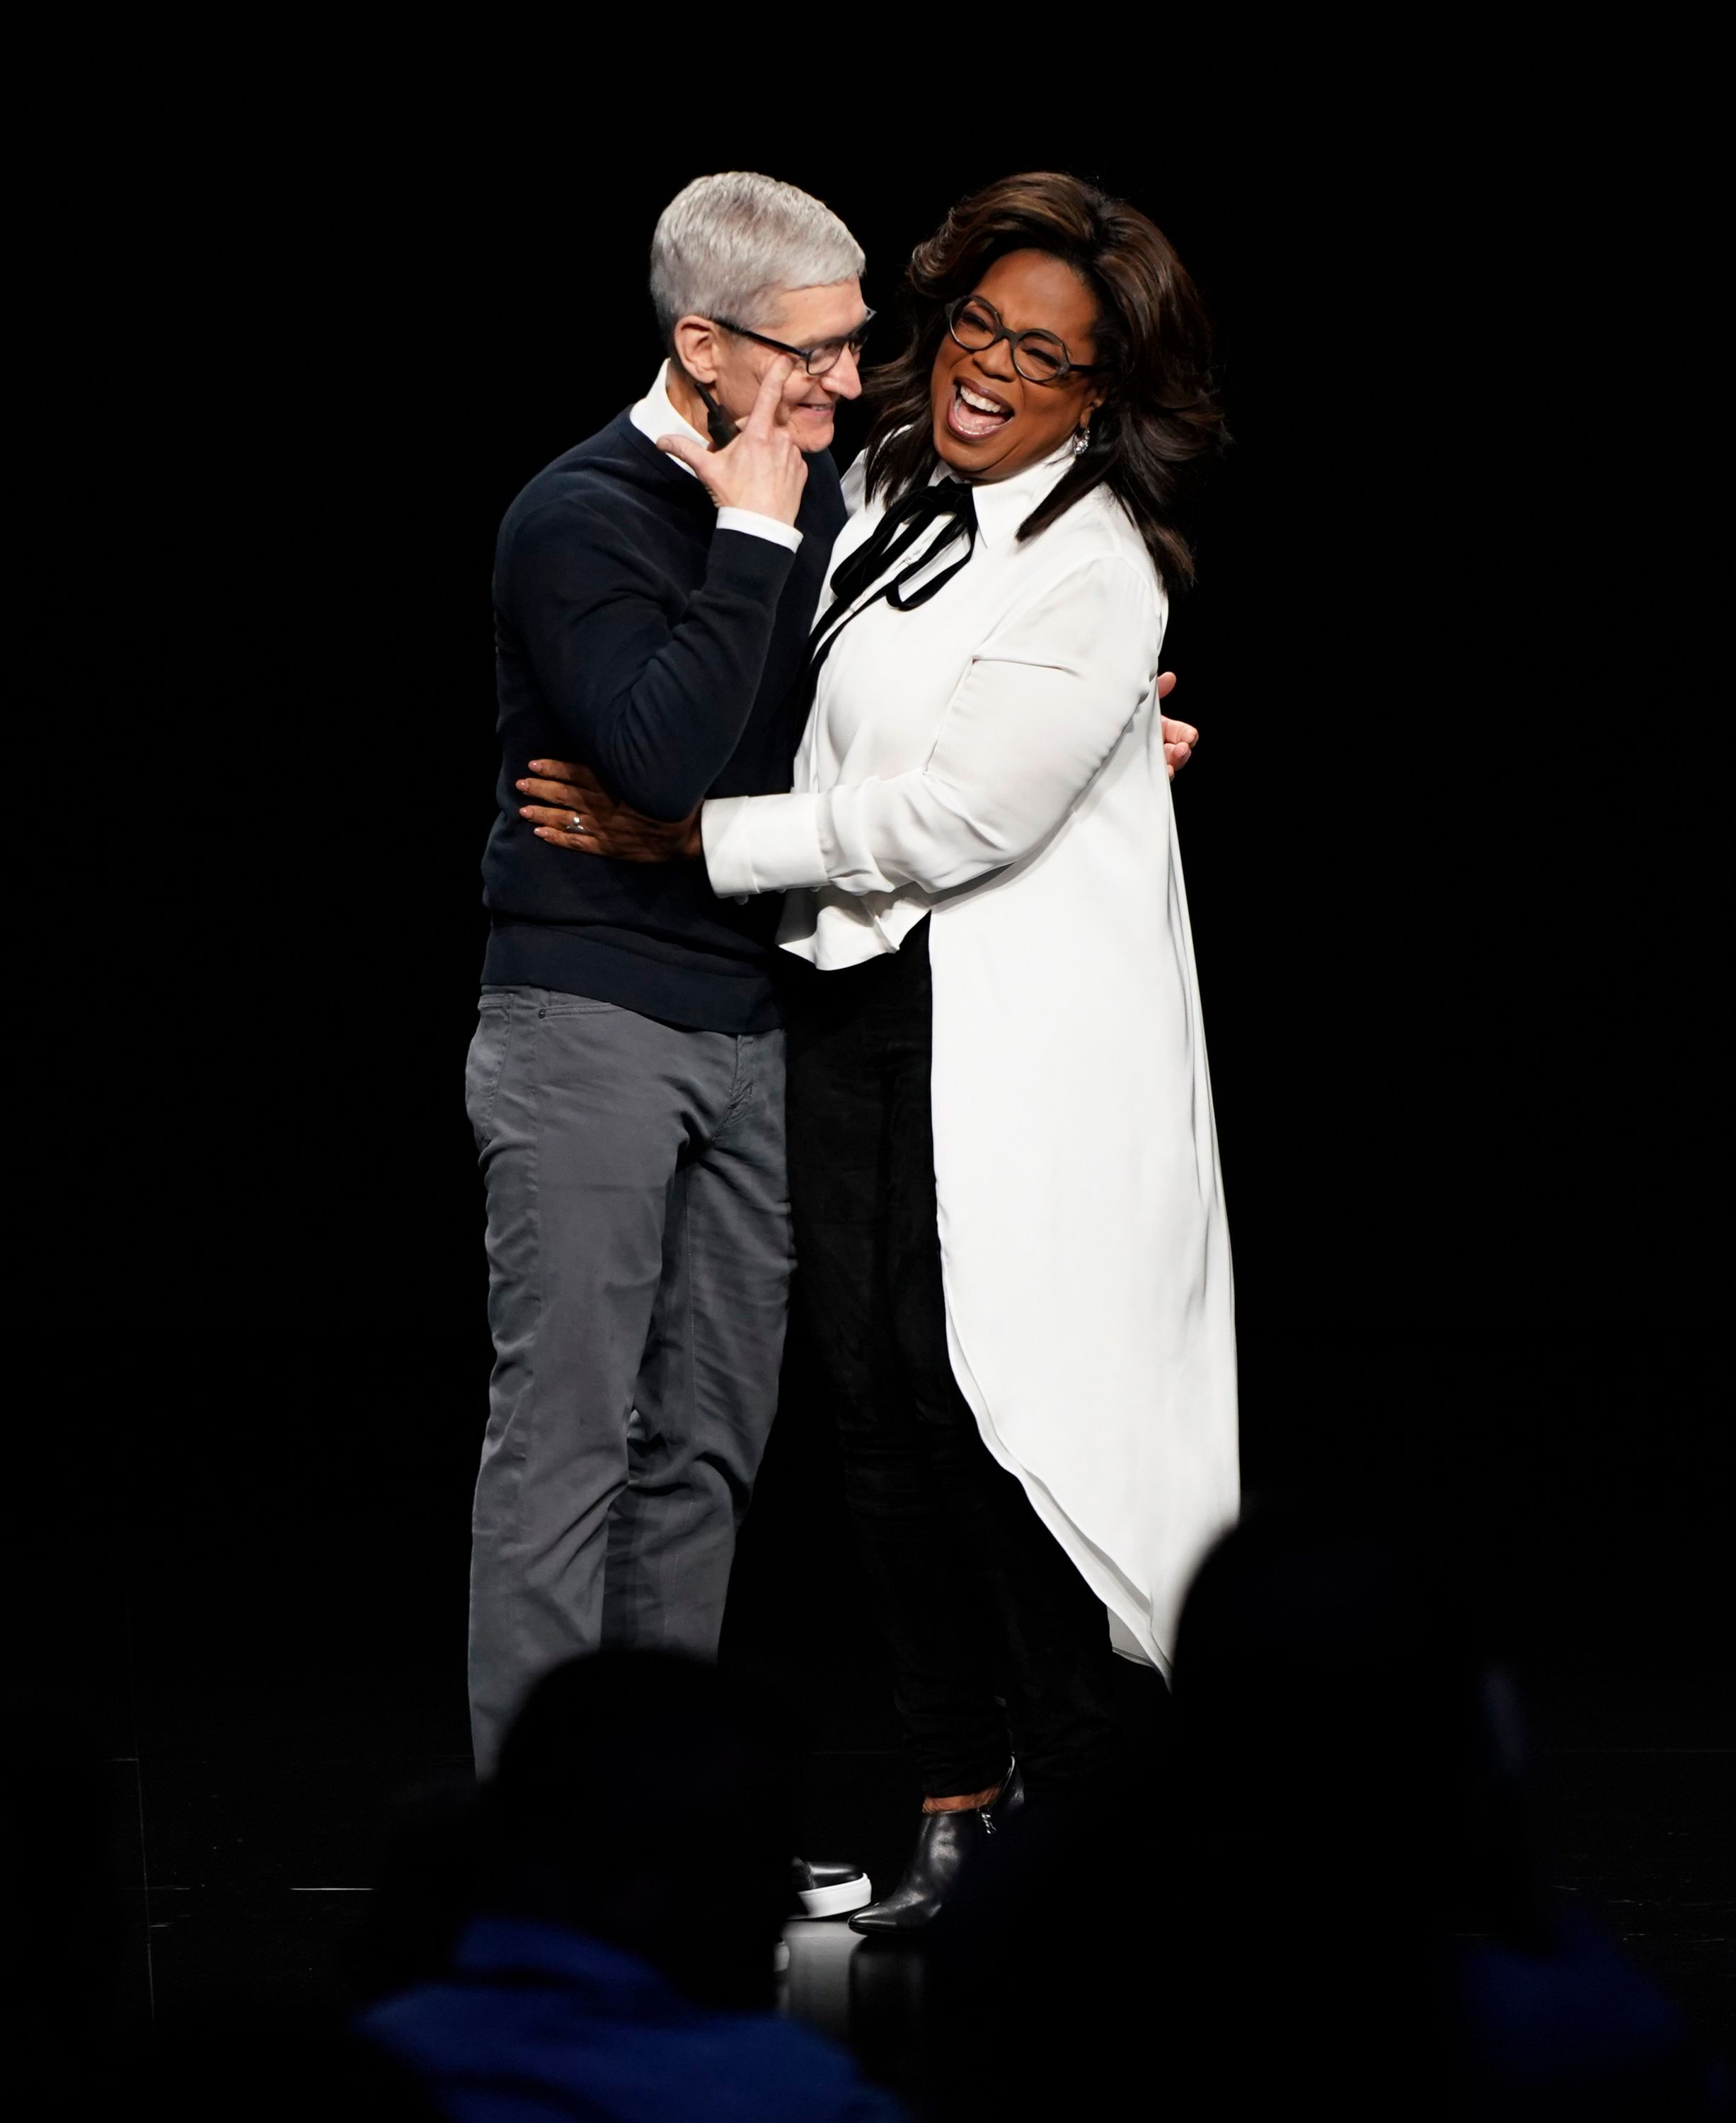 Apple CEO Tim Cook and Oprah Winfrey embrace at the Steve Jobs Theater during an event to announce new Apple products, in Cupertino, CalifApple Streaming TV, Cupertino, USA - 25 Mar 2019